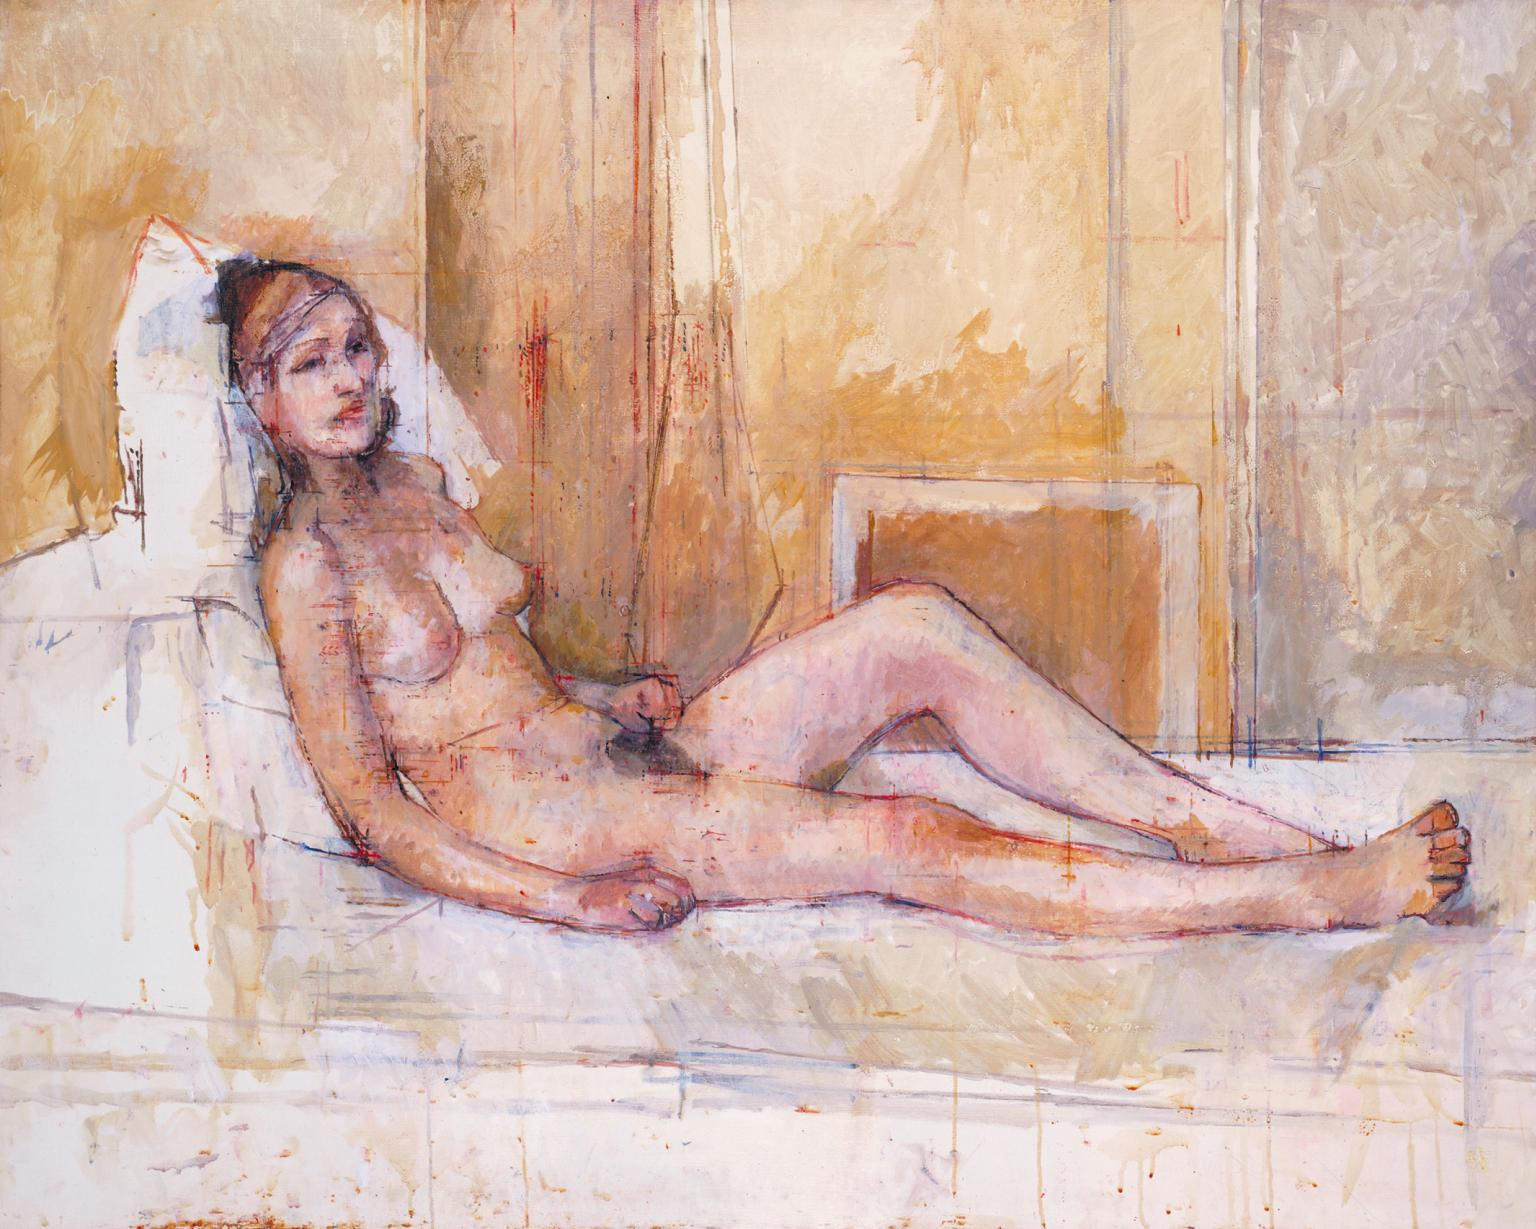 Reclining Nude 1974-6 by Sir William Coldstream 1908-1987